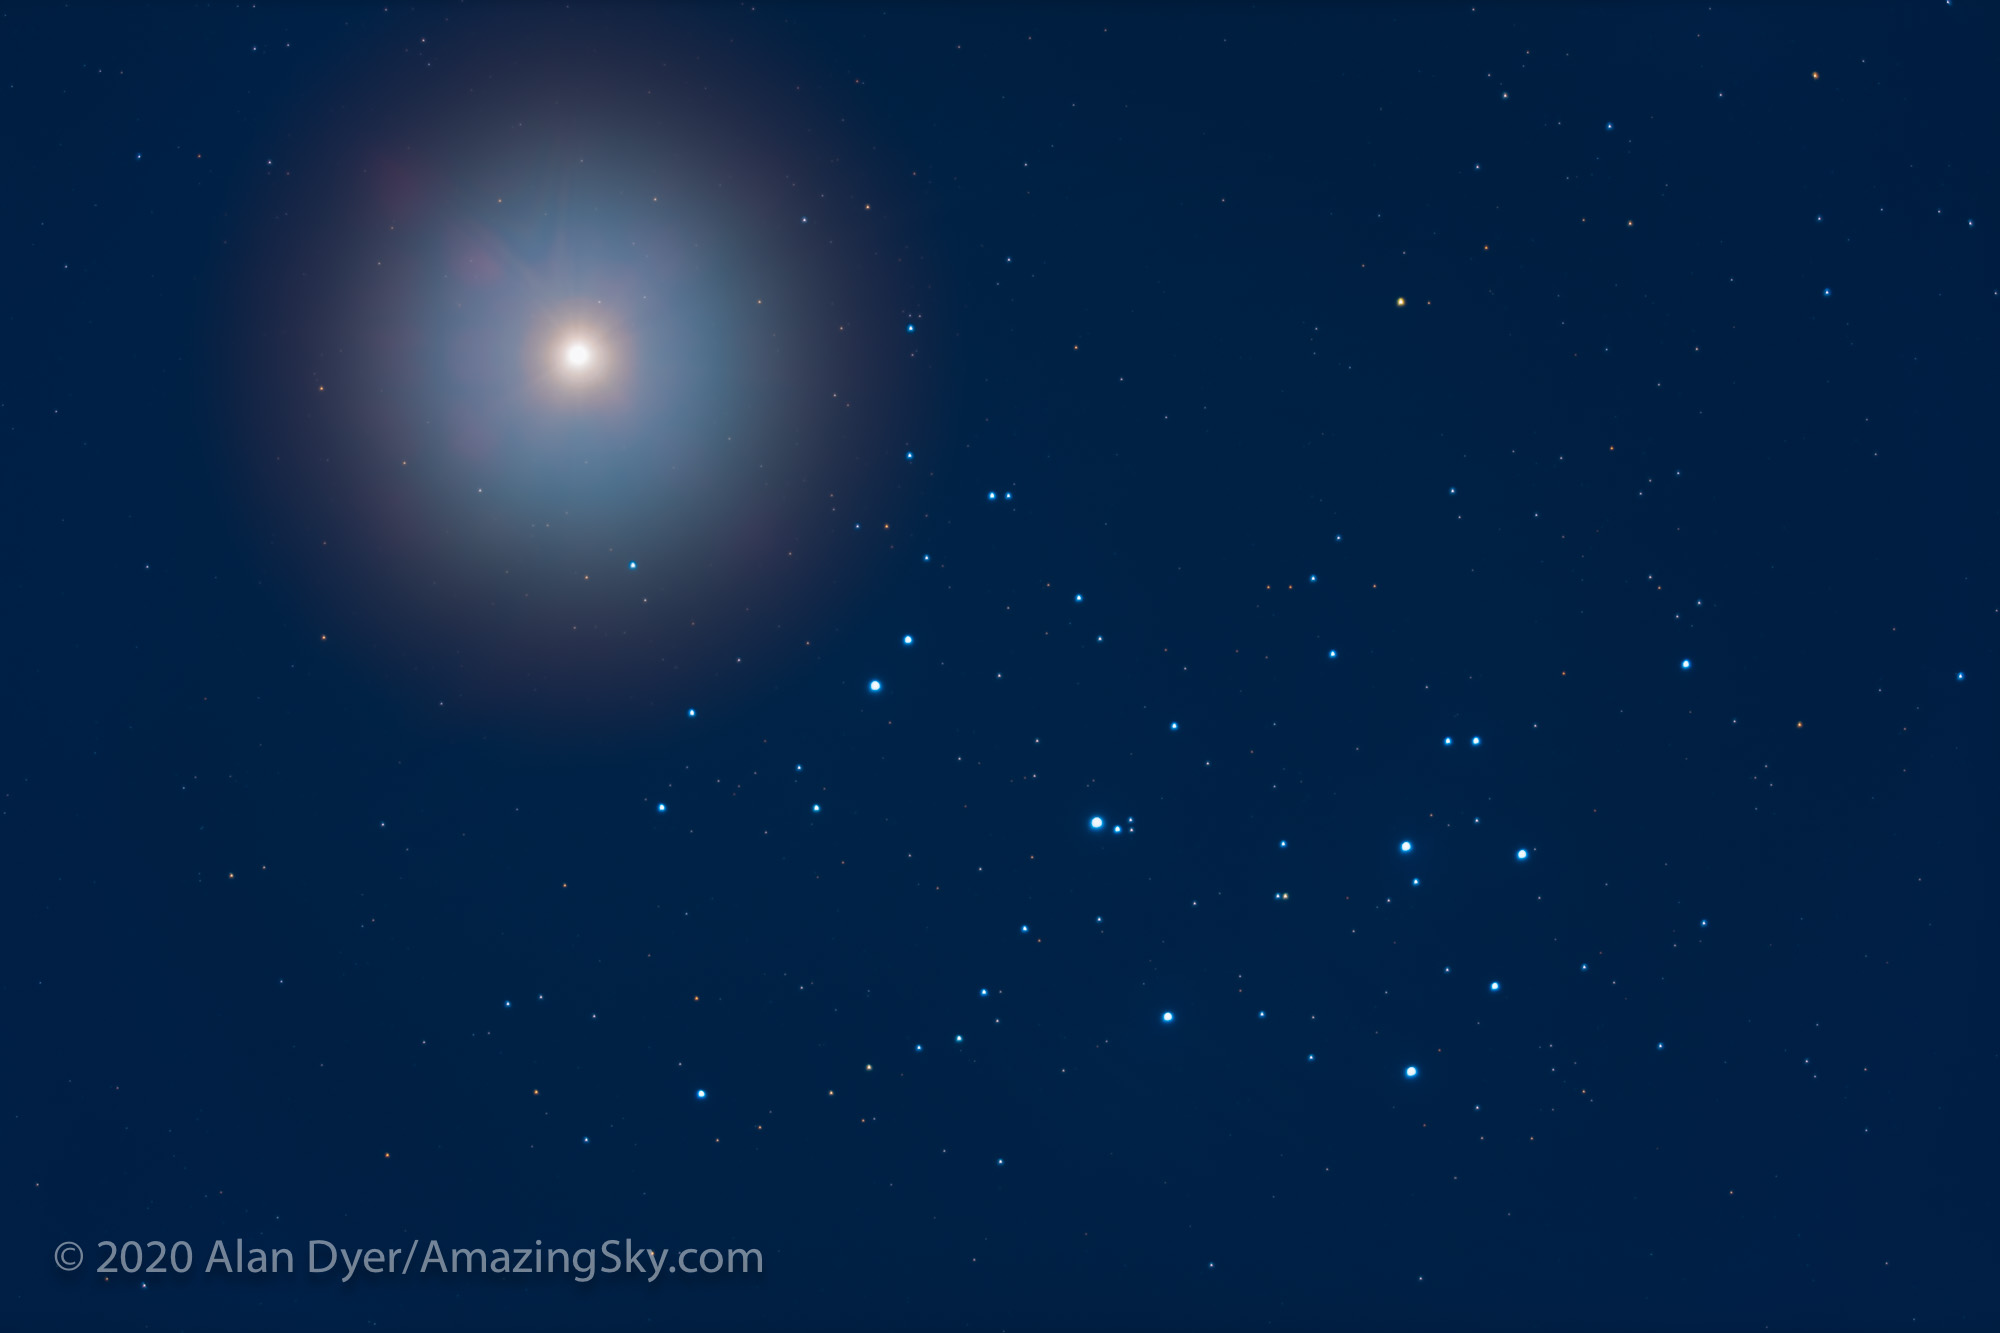 Venus and the Pleiades - Close-Up (April 4, 2020)